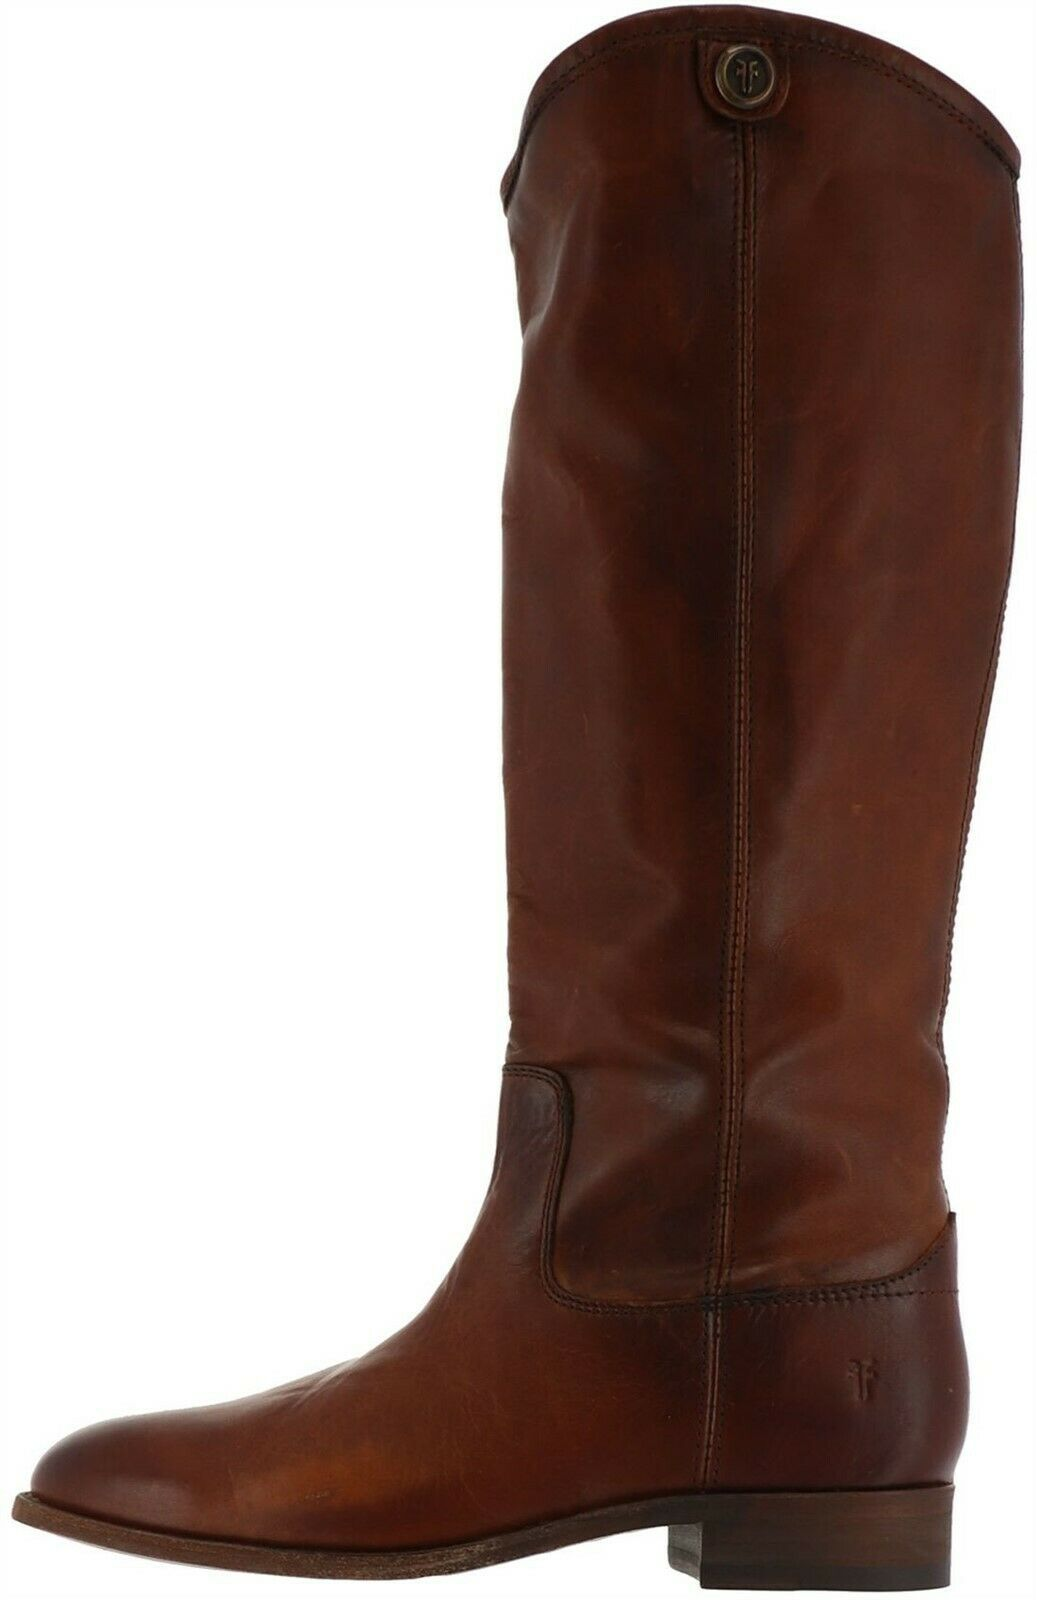 Primary image for Frye Leather Tall Shaft Boots Melissa Button2 Cognac 6M NEW A367411